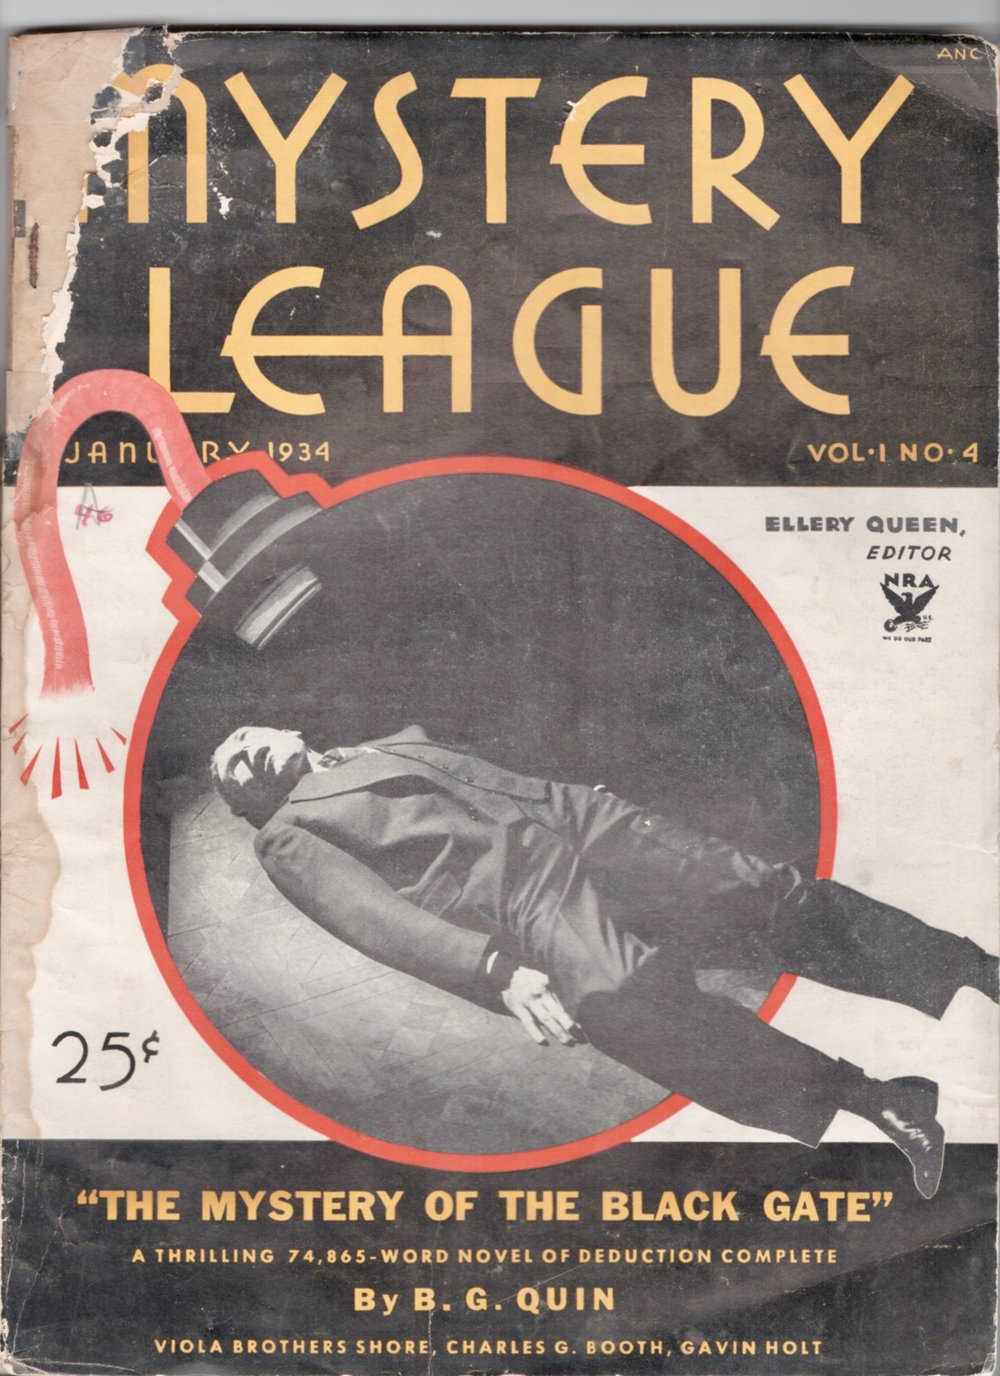 A rare and badly chewed copy of Mystery League magazine for January 1934 from my collection.